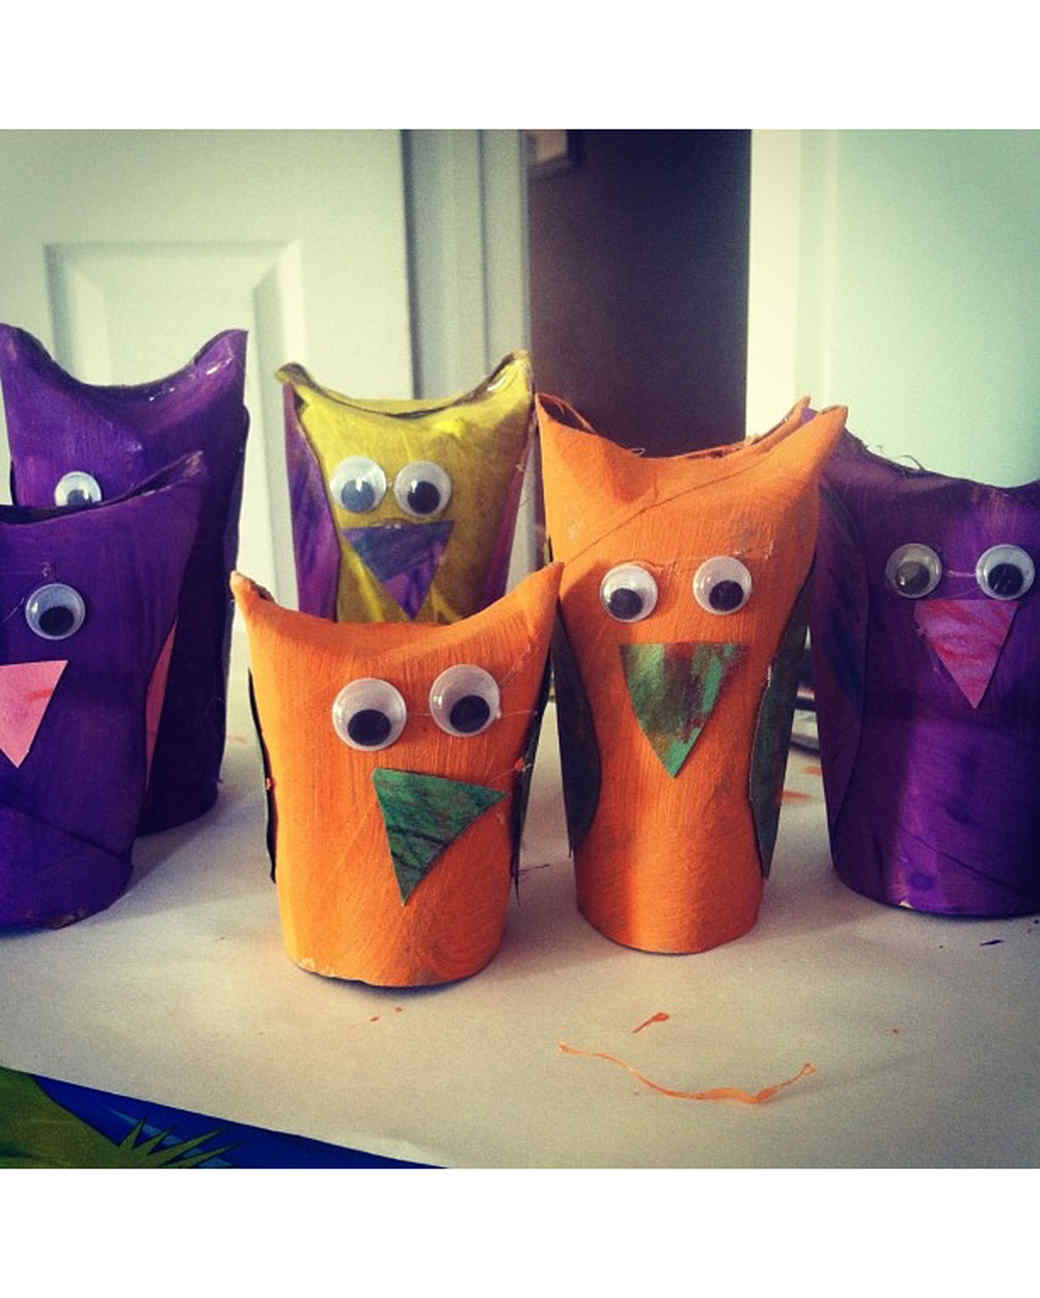 crafts-for-kids-submission-8-danniwhit.jpg